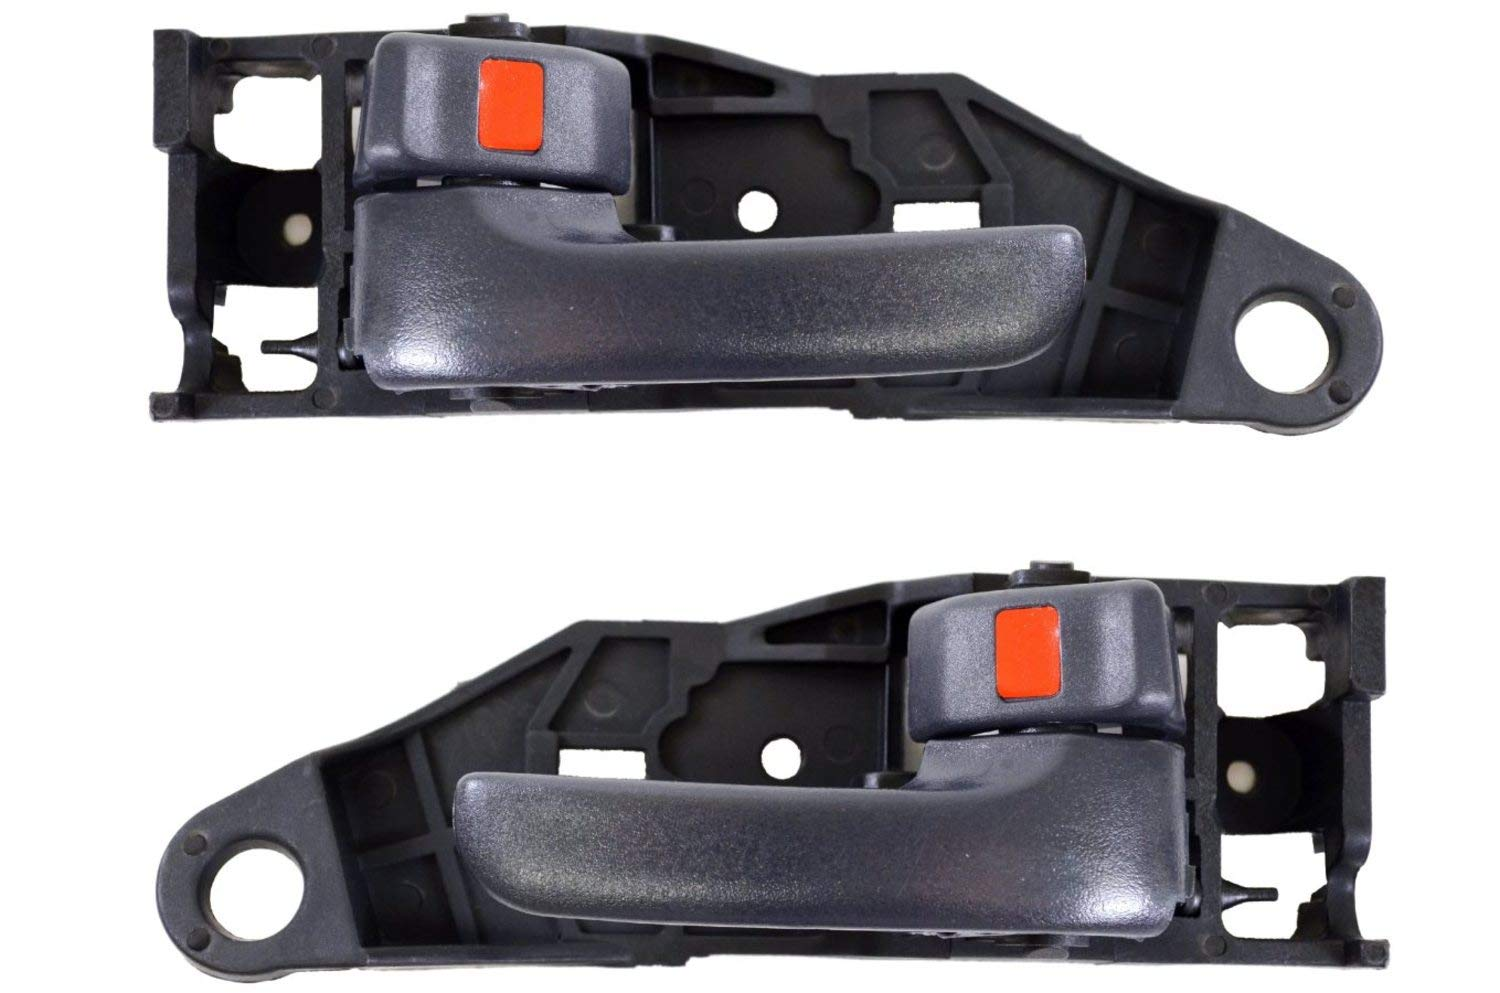 PT Auto Warehouse FO-2506MA-FR Front Right Passenger Side Chrome Lever with Black Housing with Power Door Lock Interior Inner Inside Door Handle